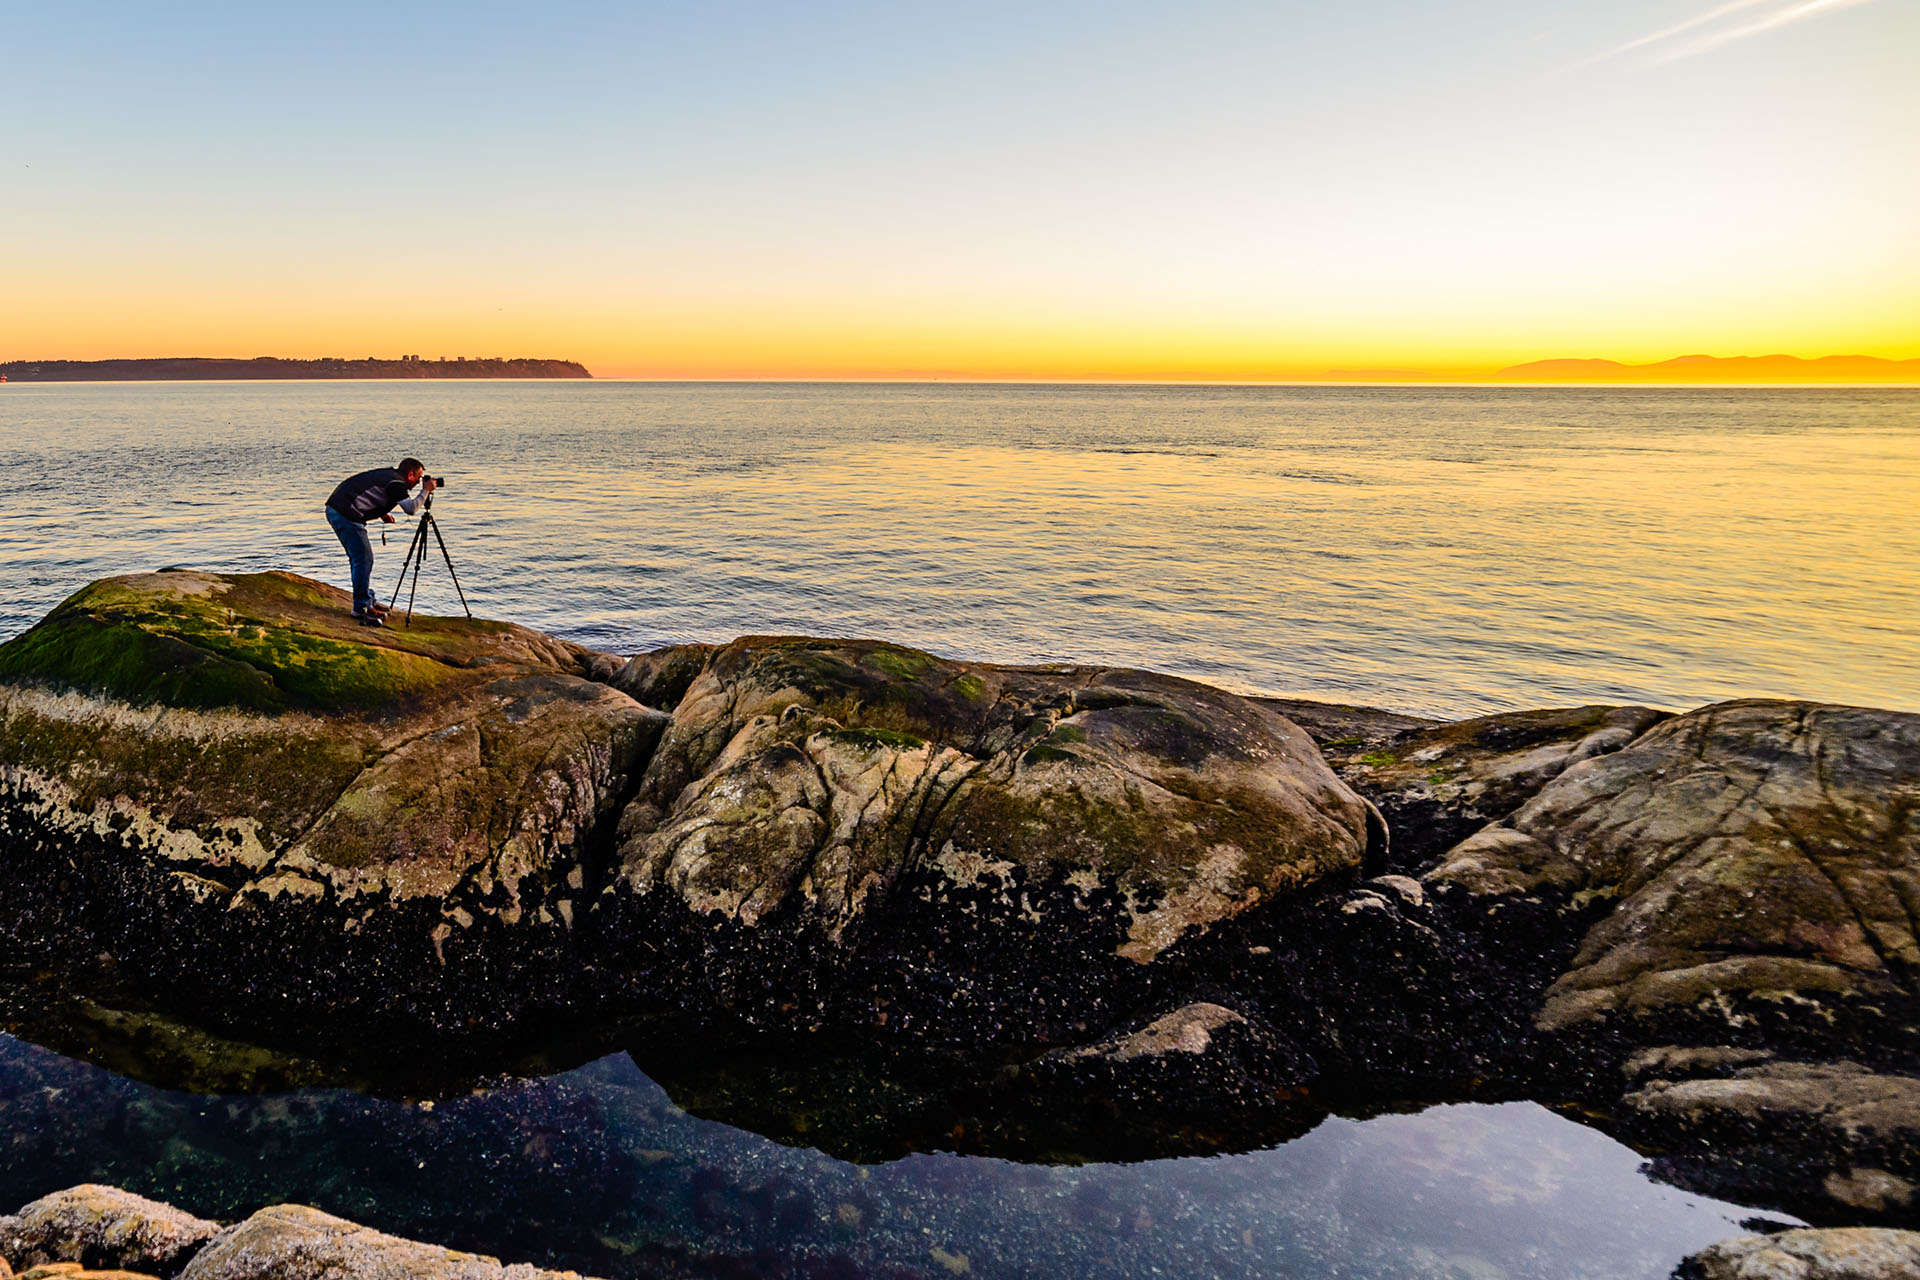 Mark LaBoyteaux shooting a sunset in Vancouver